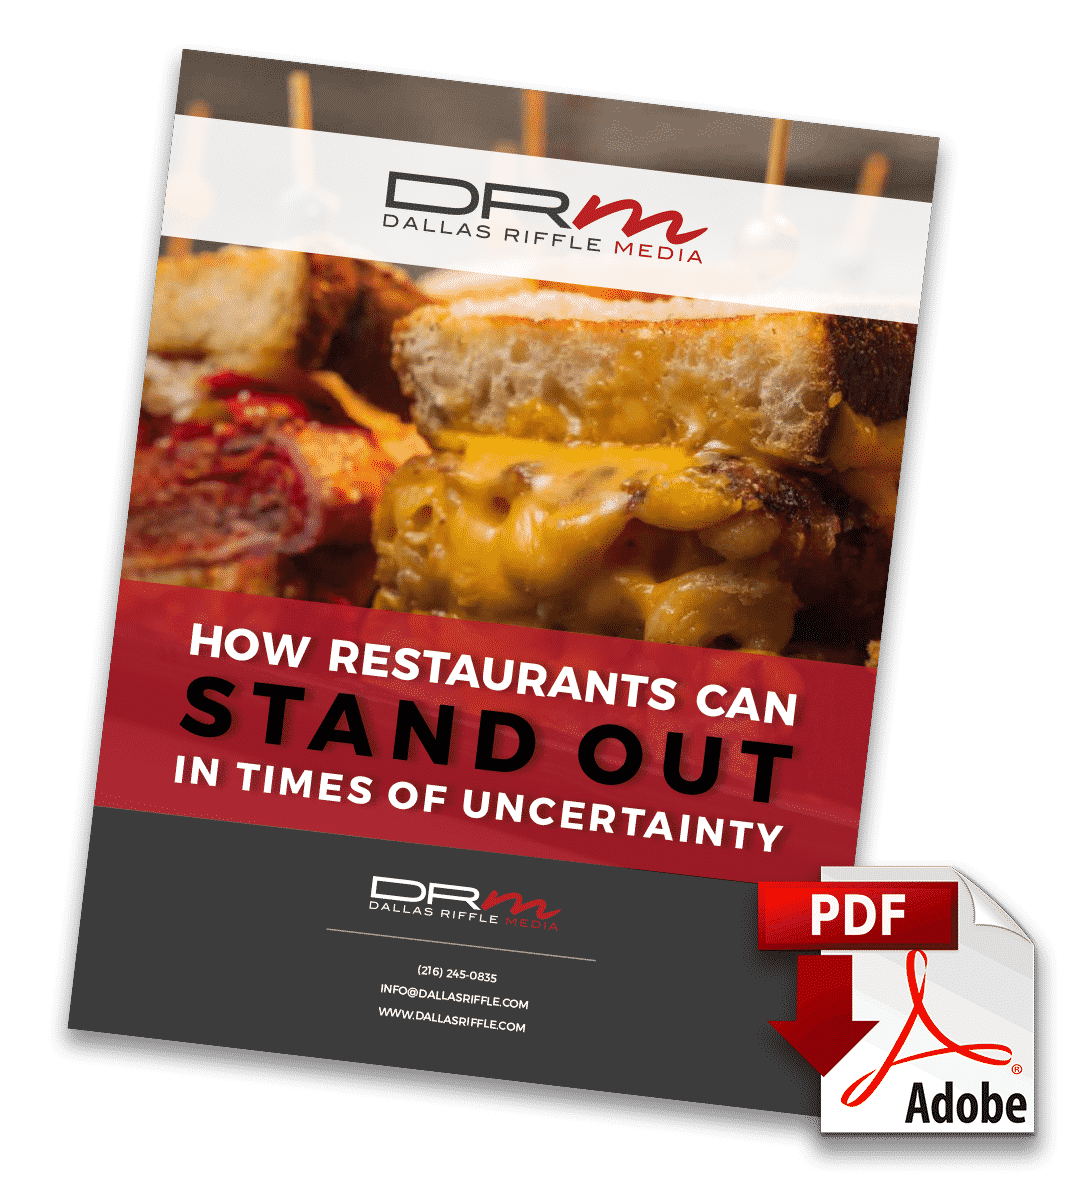 [Free White Paper] How restaurants can stand out in times of uncertainty